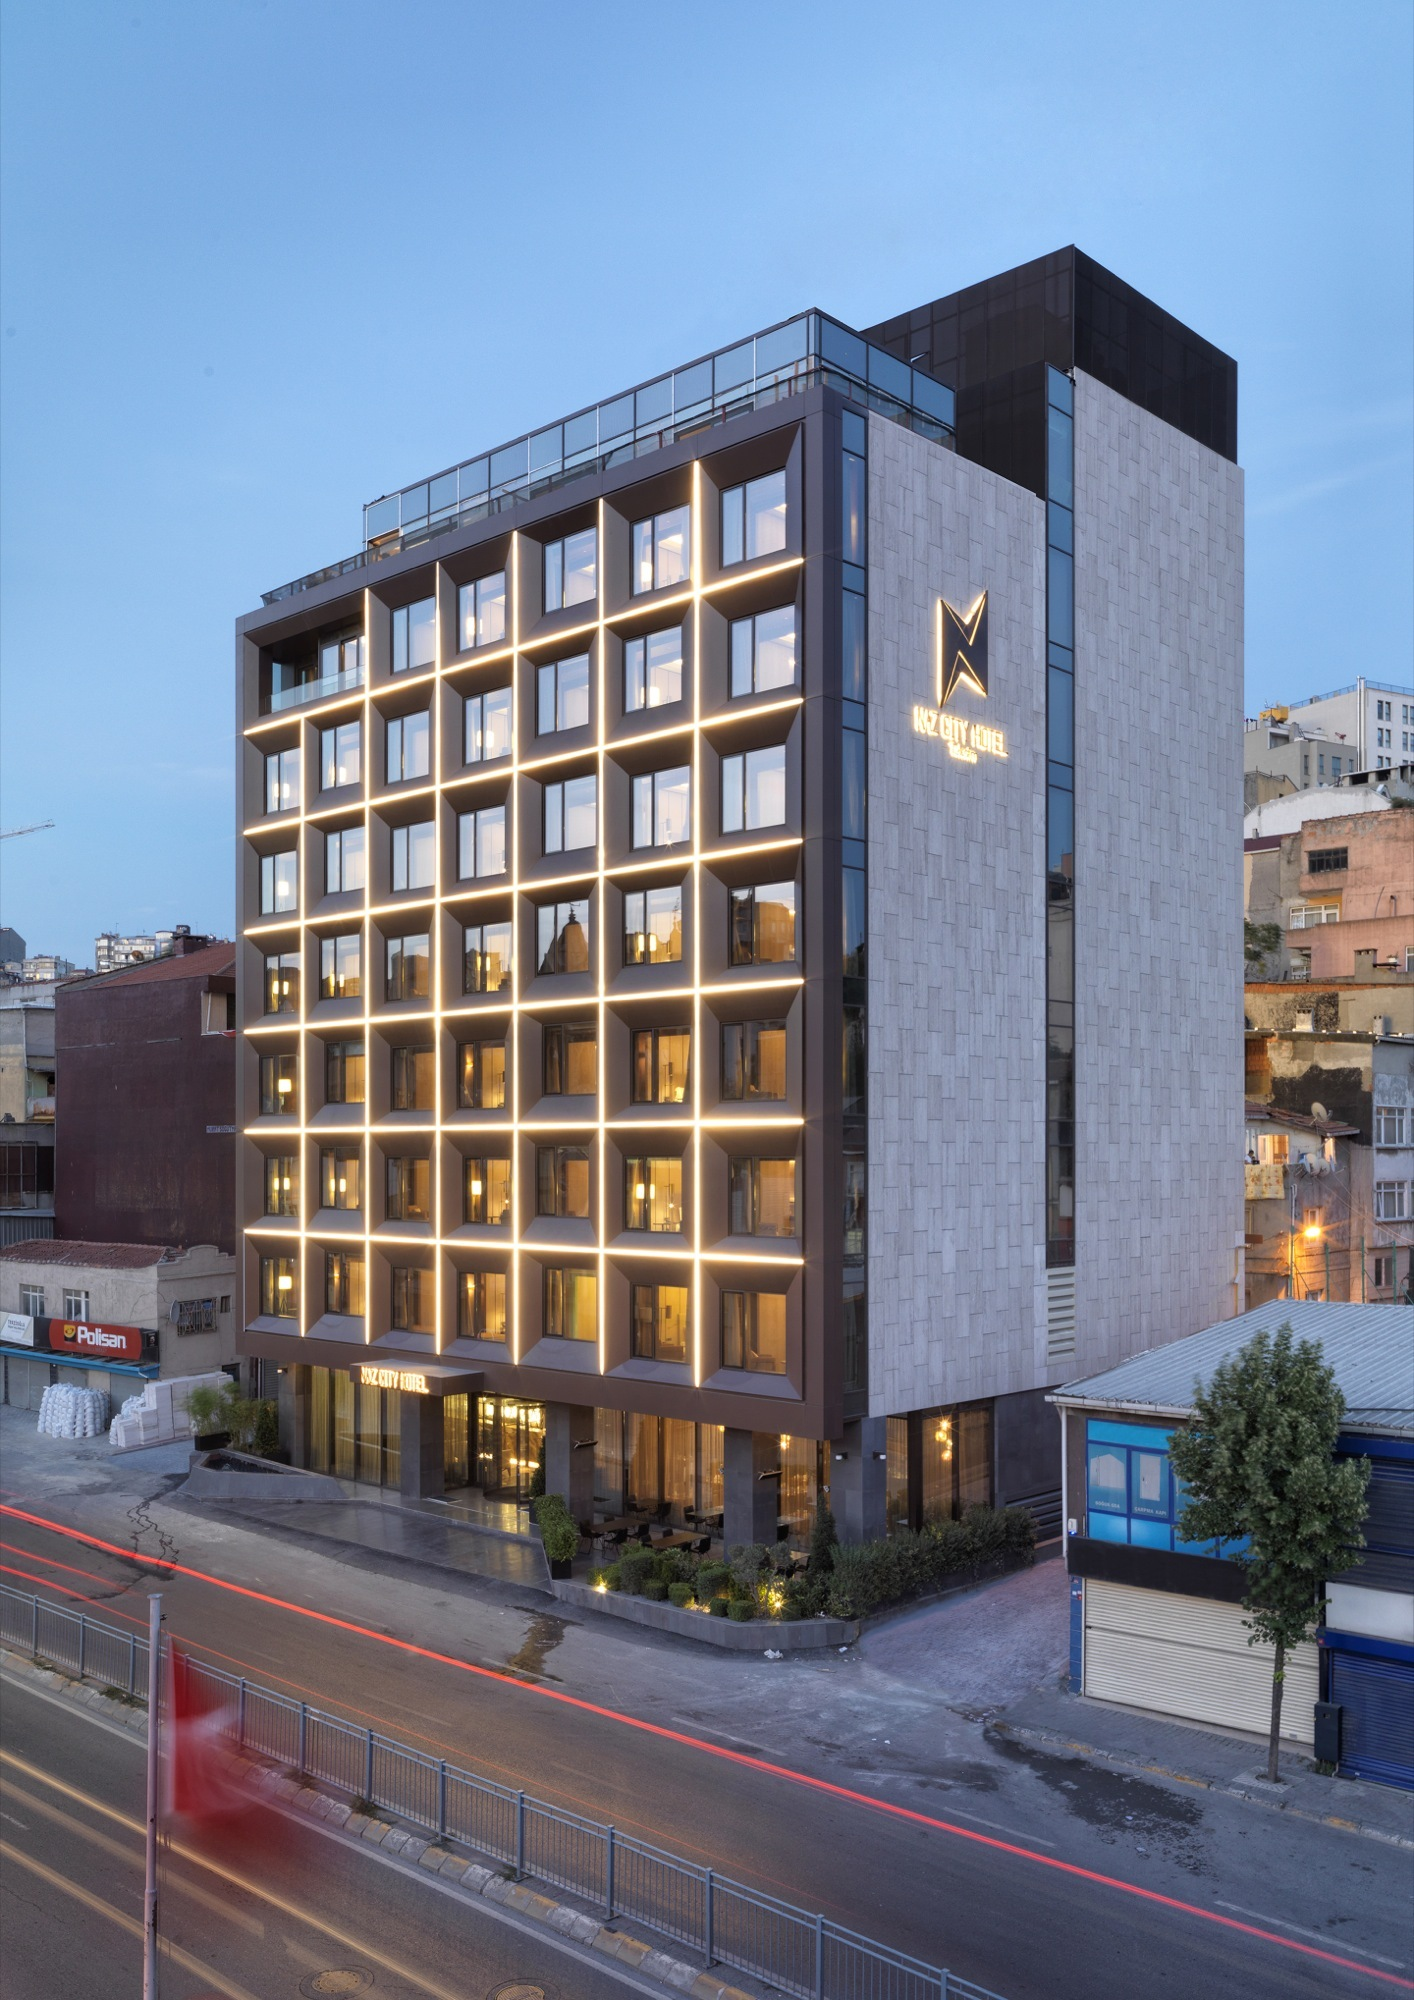 Naz city hotel taksim metex design group archdaily for Designhotel q